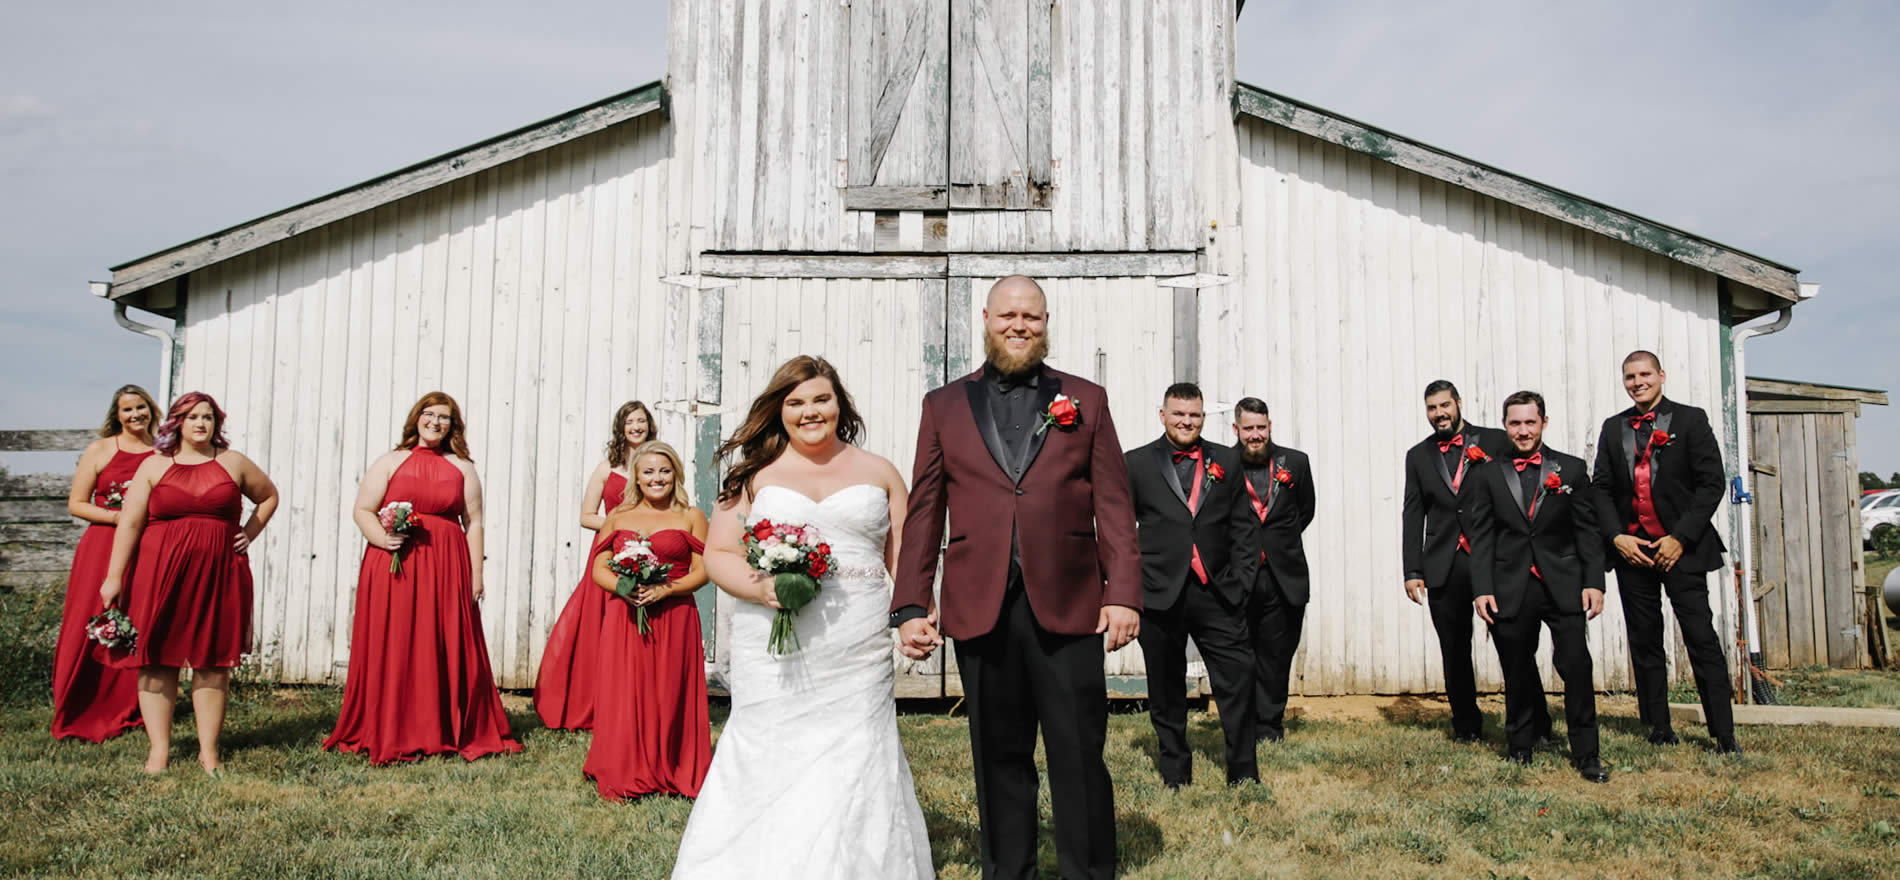 barn wedding near louisville ky - wedding party in front of barn